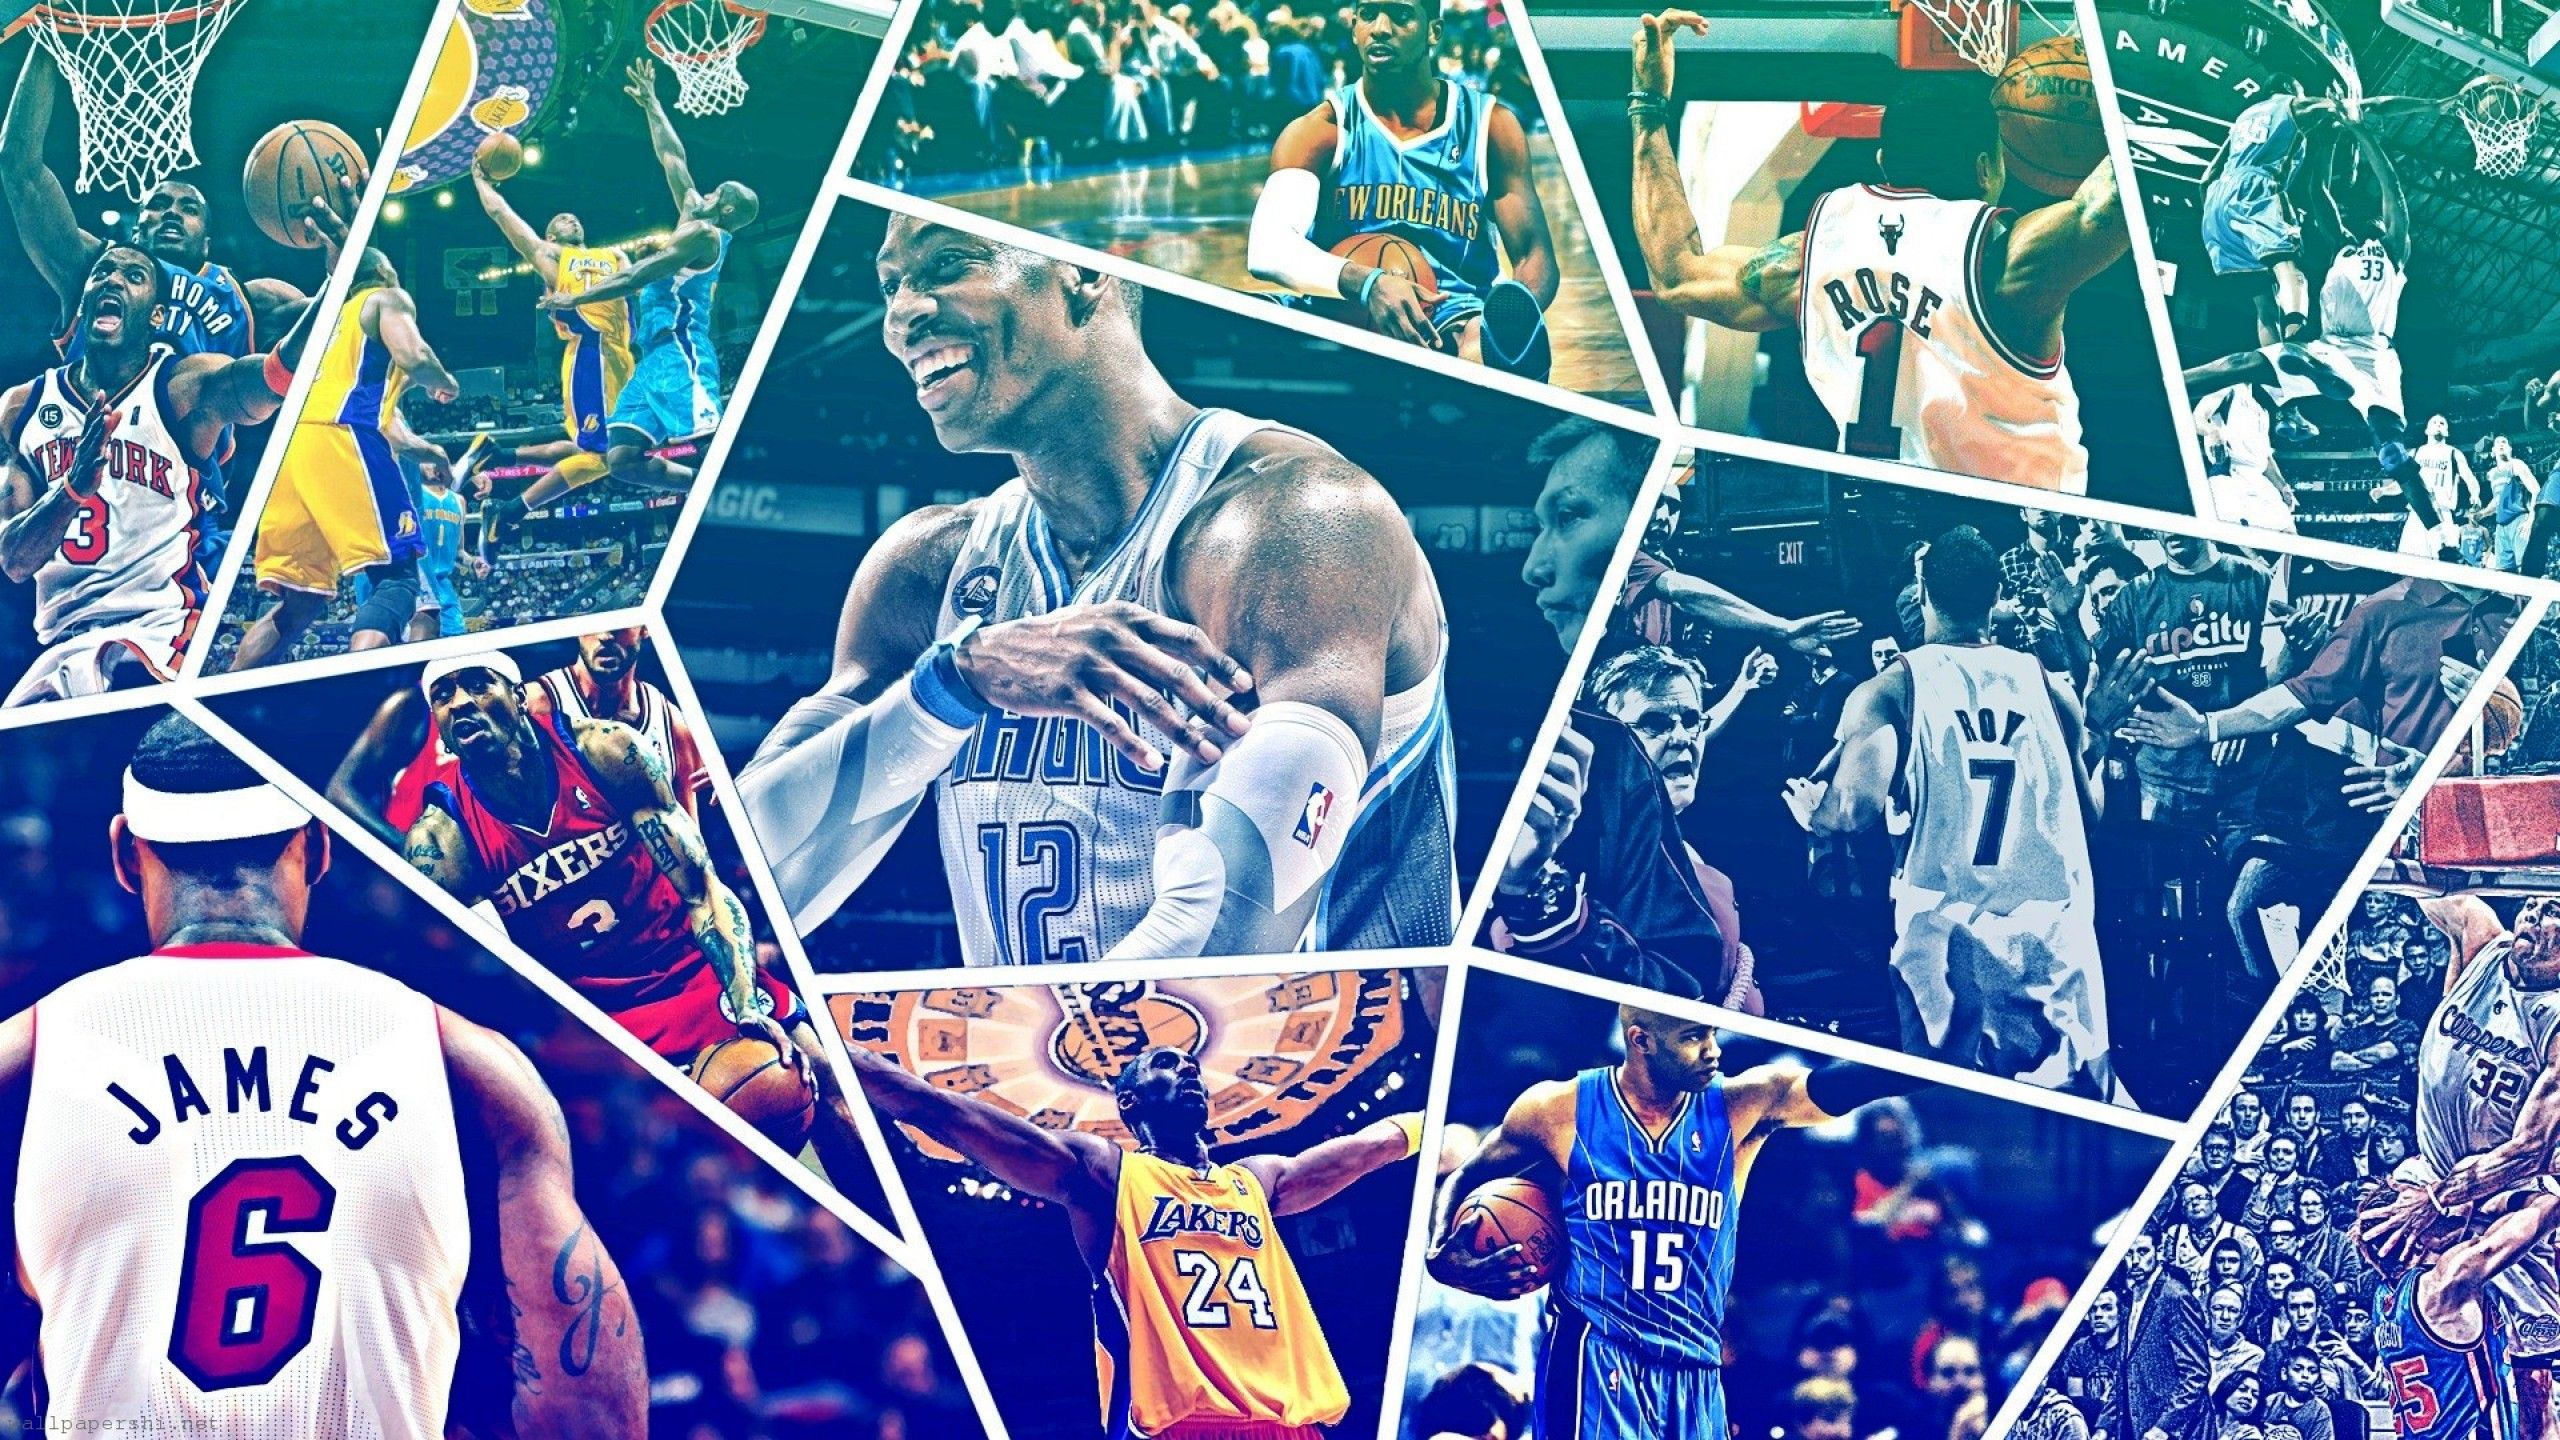 Sport Wallpaper For Android Mobile: Sports Wallpaper: Sports Collage Android Wallpapers For HD